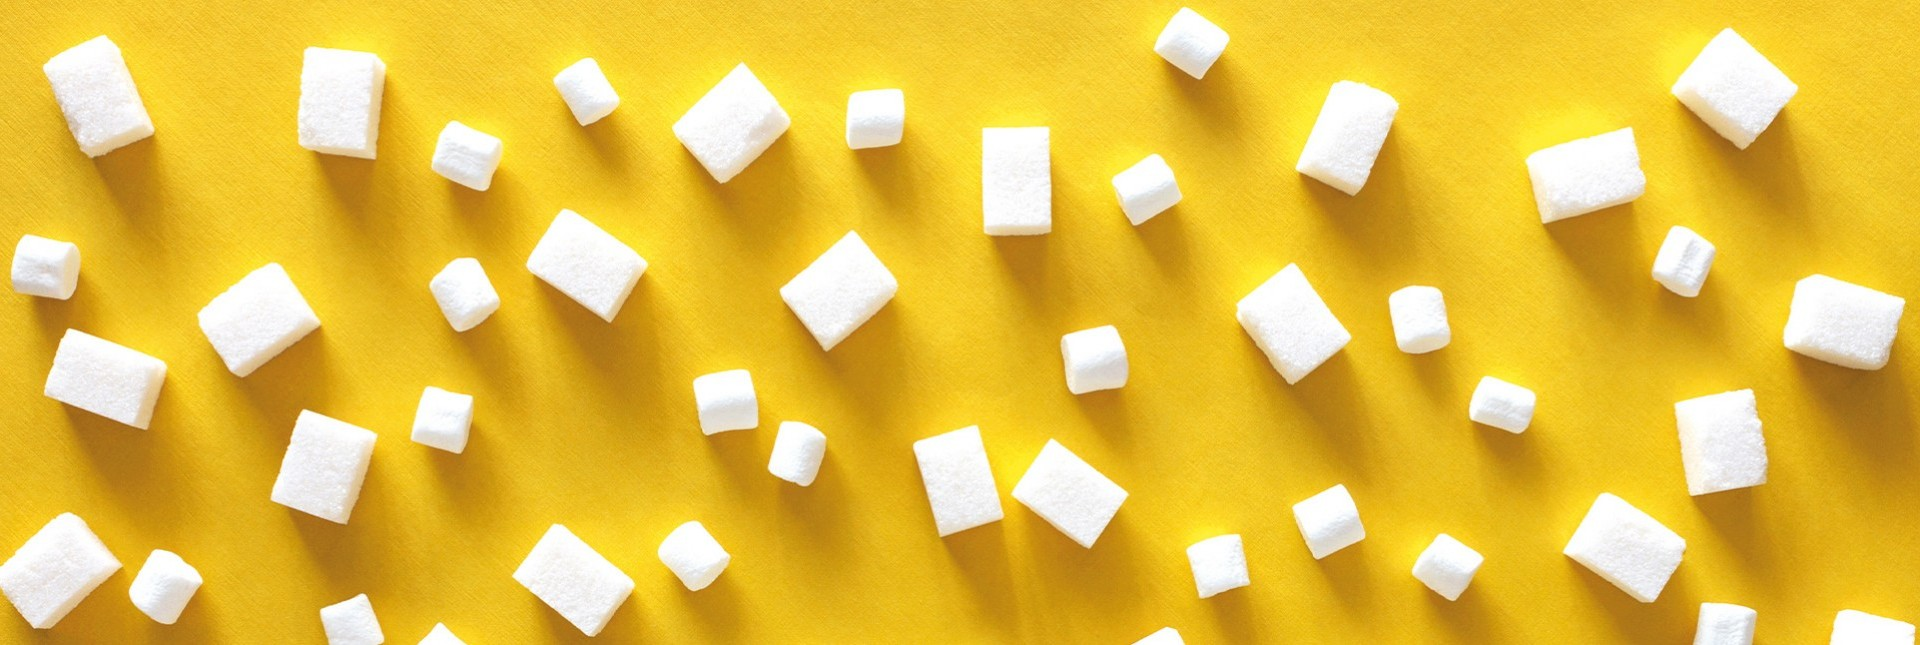 Does Sugar Damage Our Health?